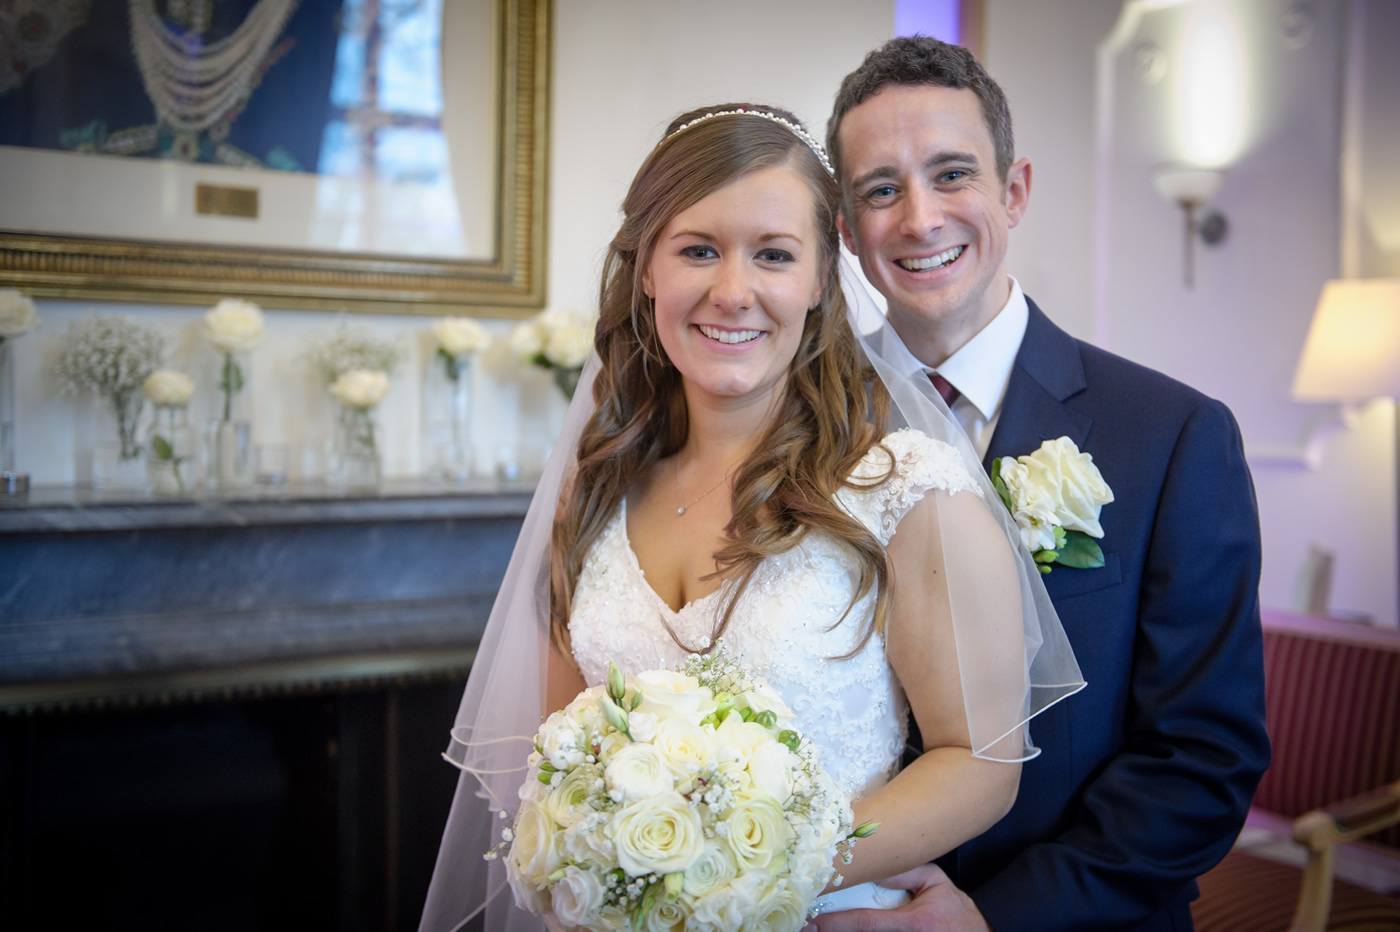 Bride & Groom at Taplow House Hotel Reception, Maidenhead, Berkshire - Hair & Make-up by Anabela